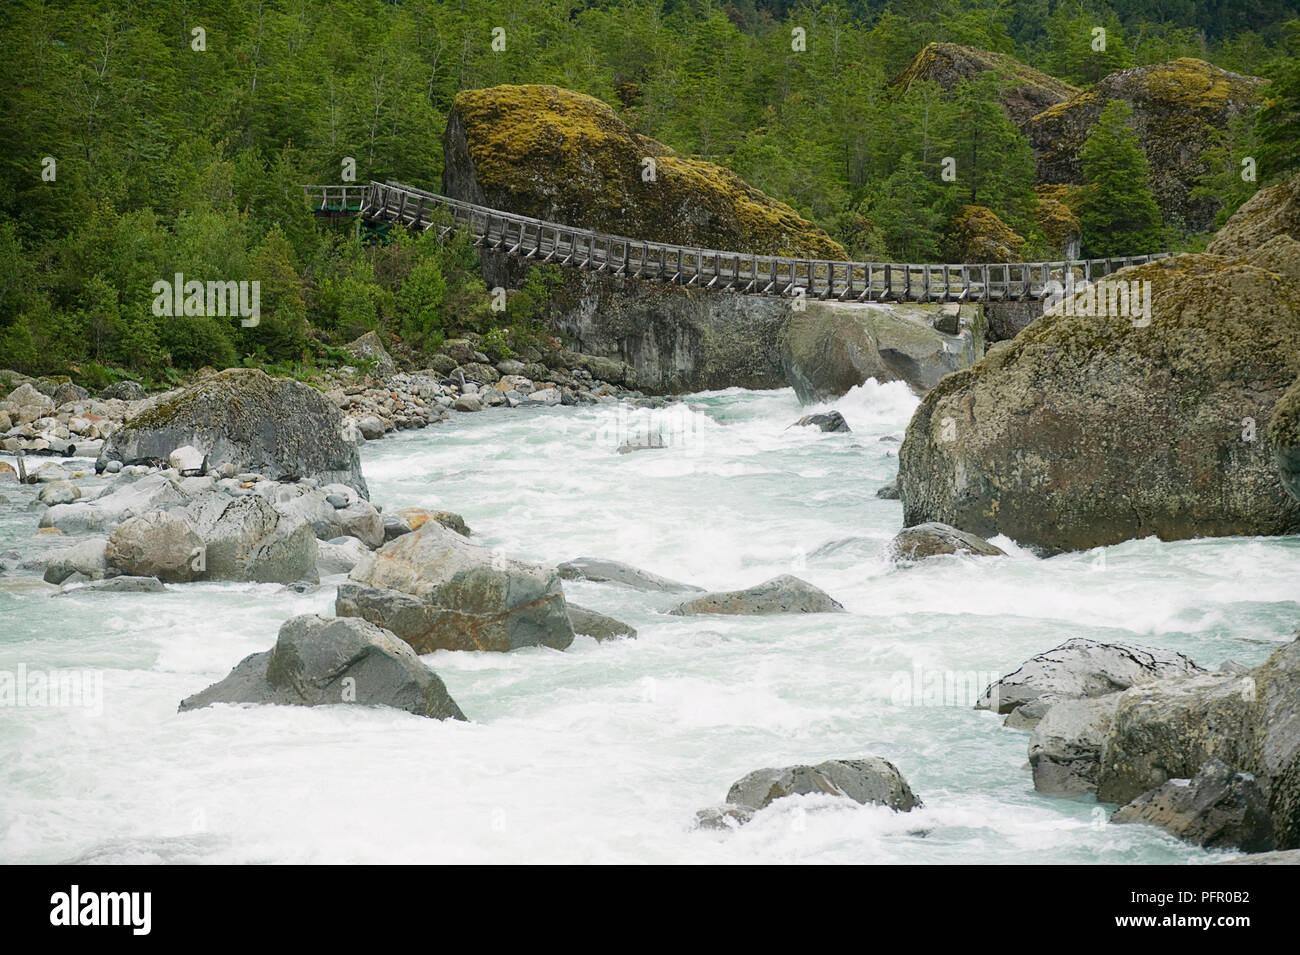 Chile, Patagonia, Queulat National Park, Ventisquero Colgante waterfall, wooden swing bridge across river - Stock Image